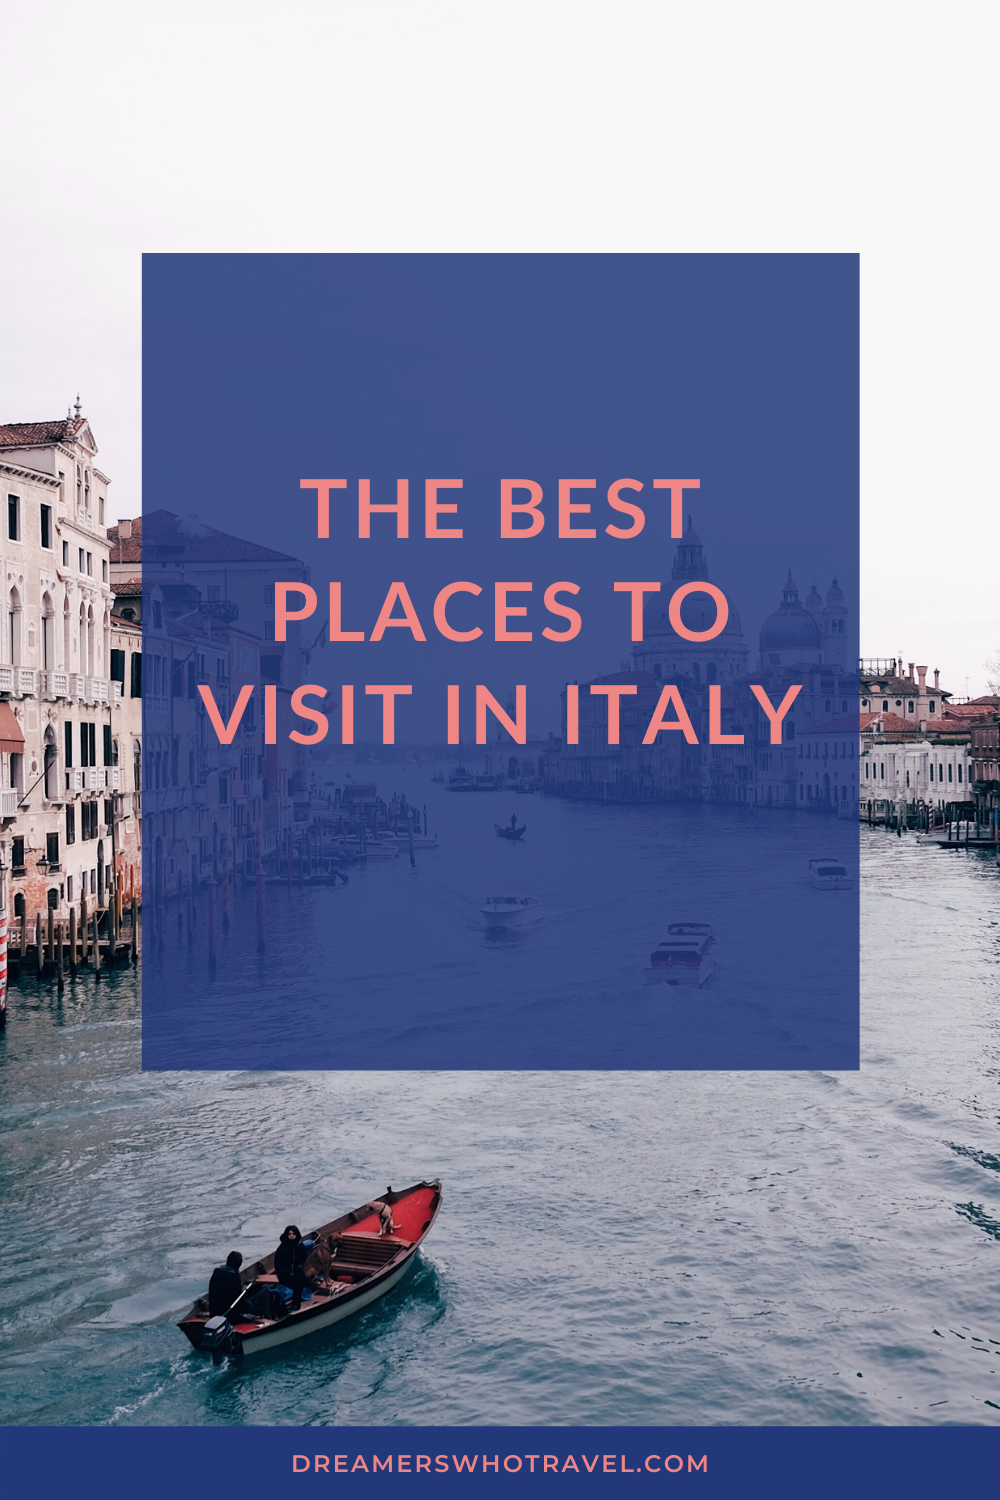 THE BEST PLACES TO VISIT IN ITALY